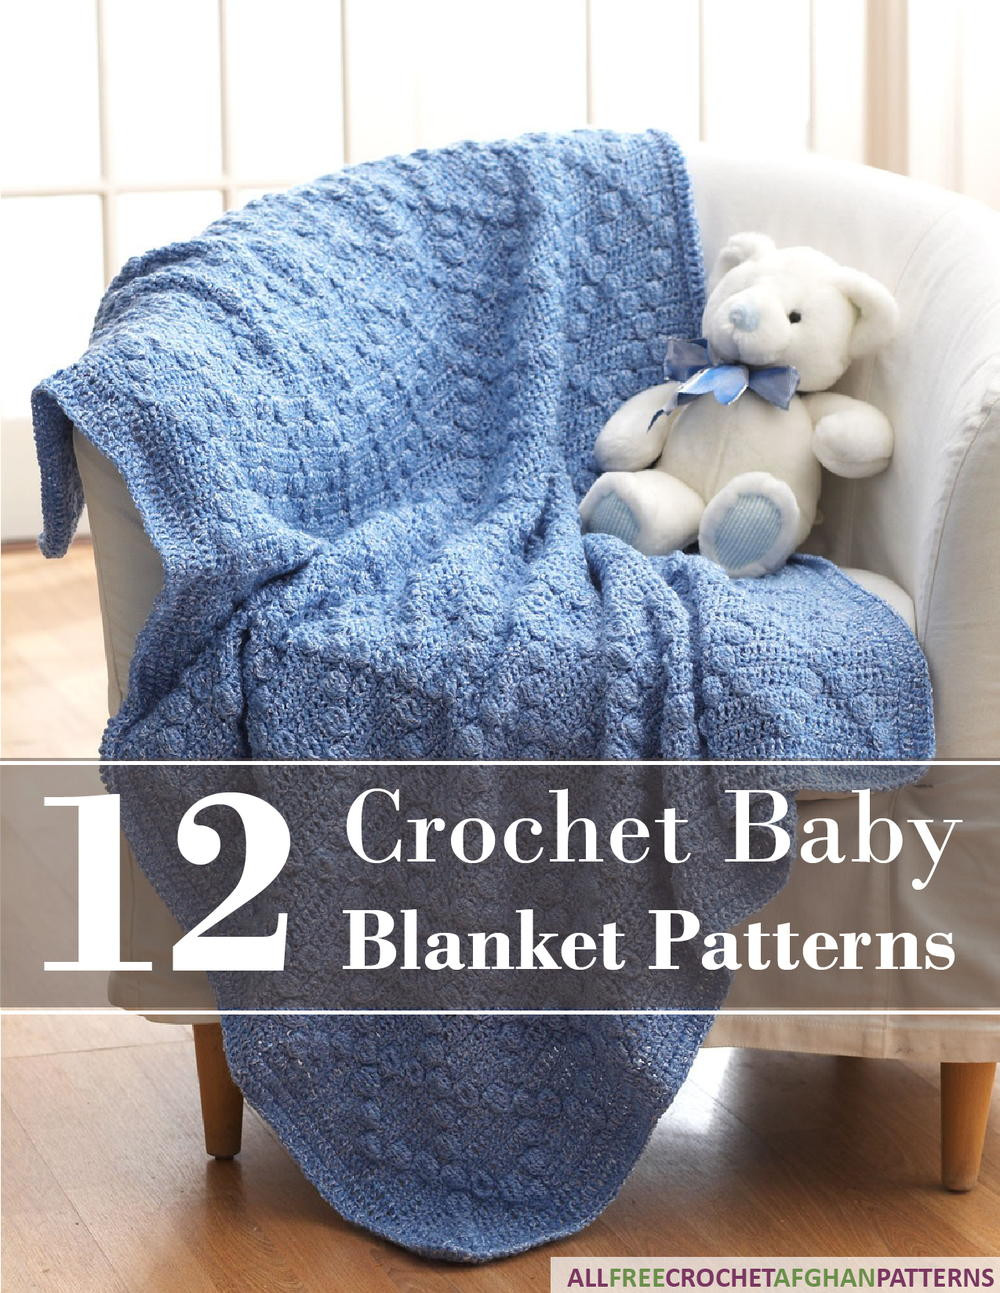 Baby Boy Crochet Blanket Patterns Elegant 12 Crochet Baby Blanket Patterns Free Ebook Of Baby Boy Crochet Blanket Patterns Elegant Fiber Flux Beautiful Blankets 30 Free Crochet Blanket